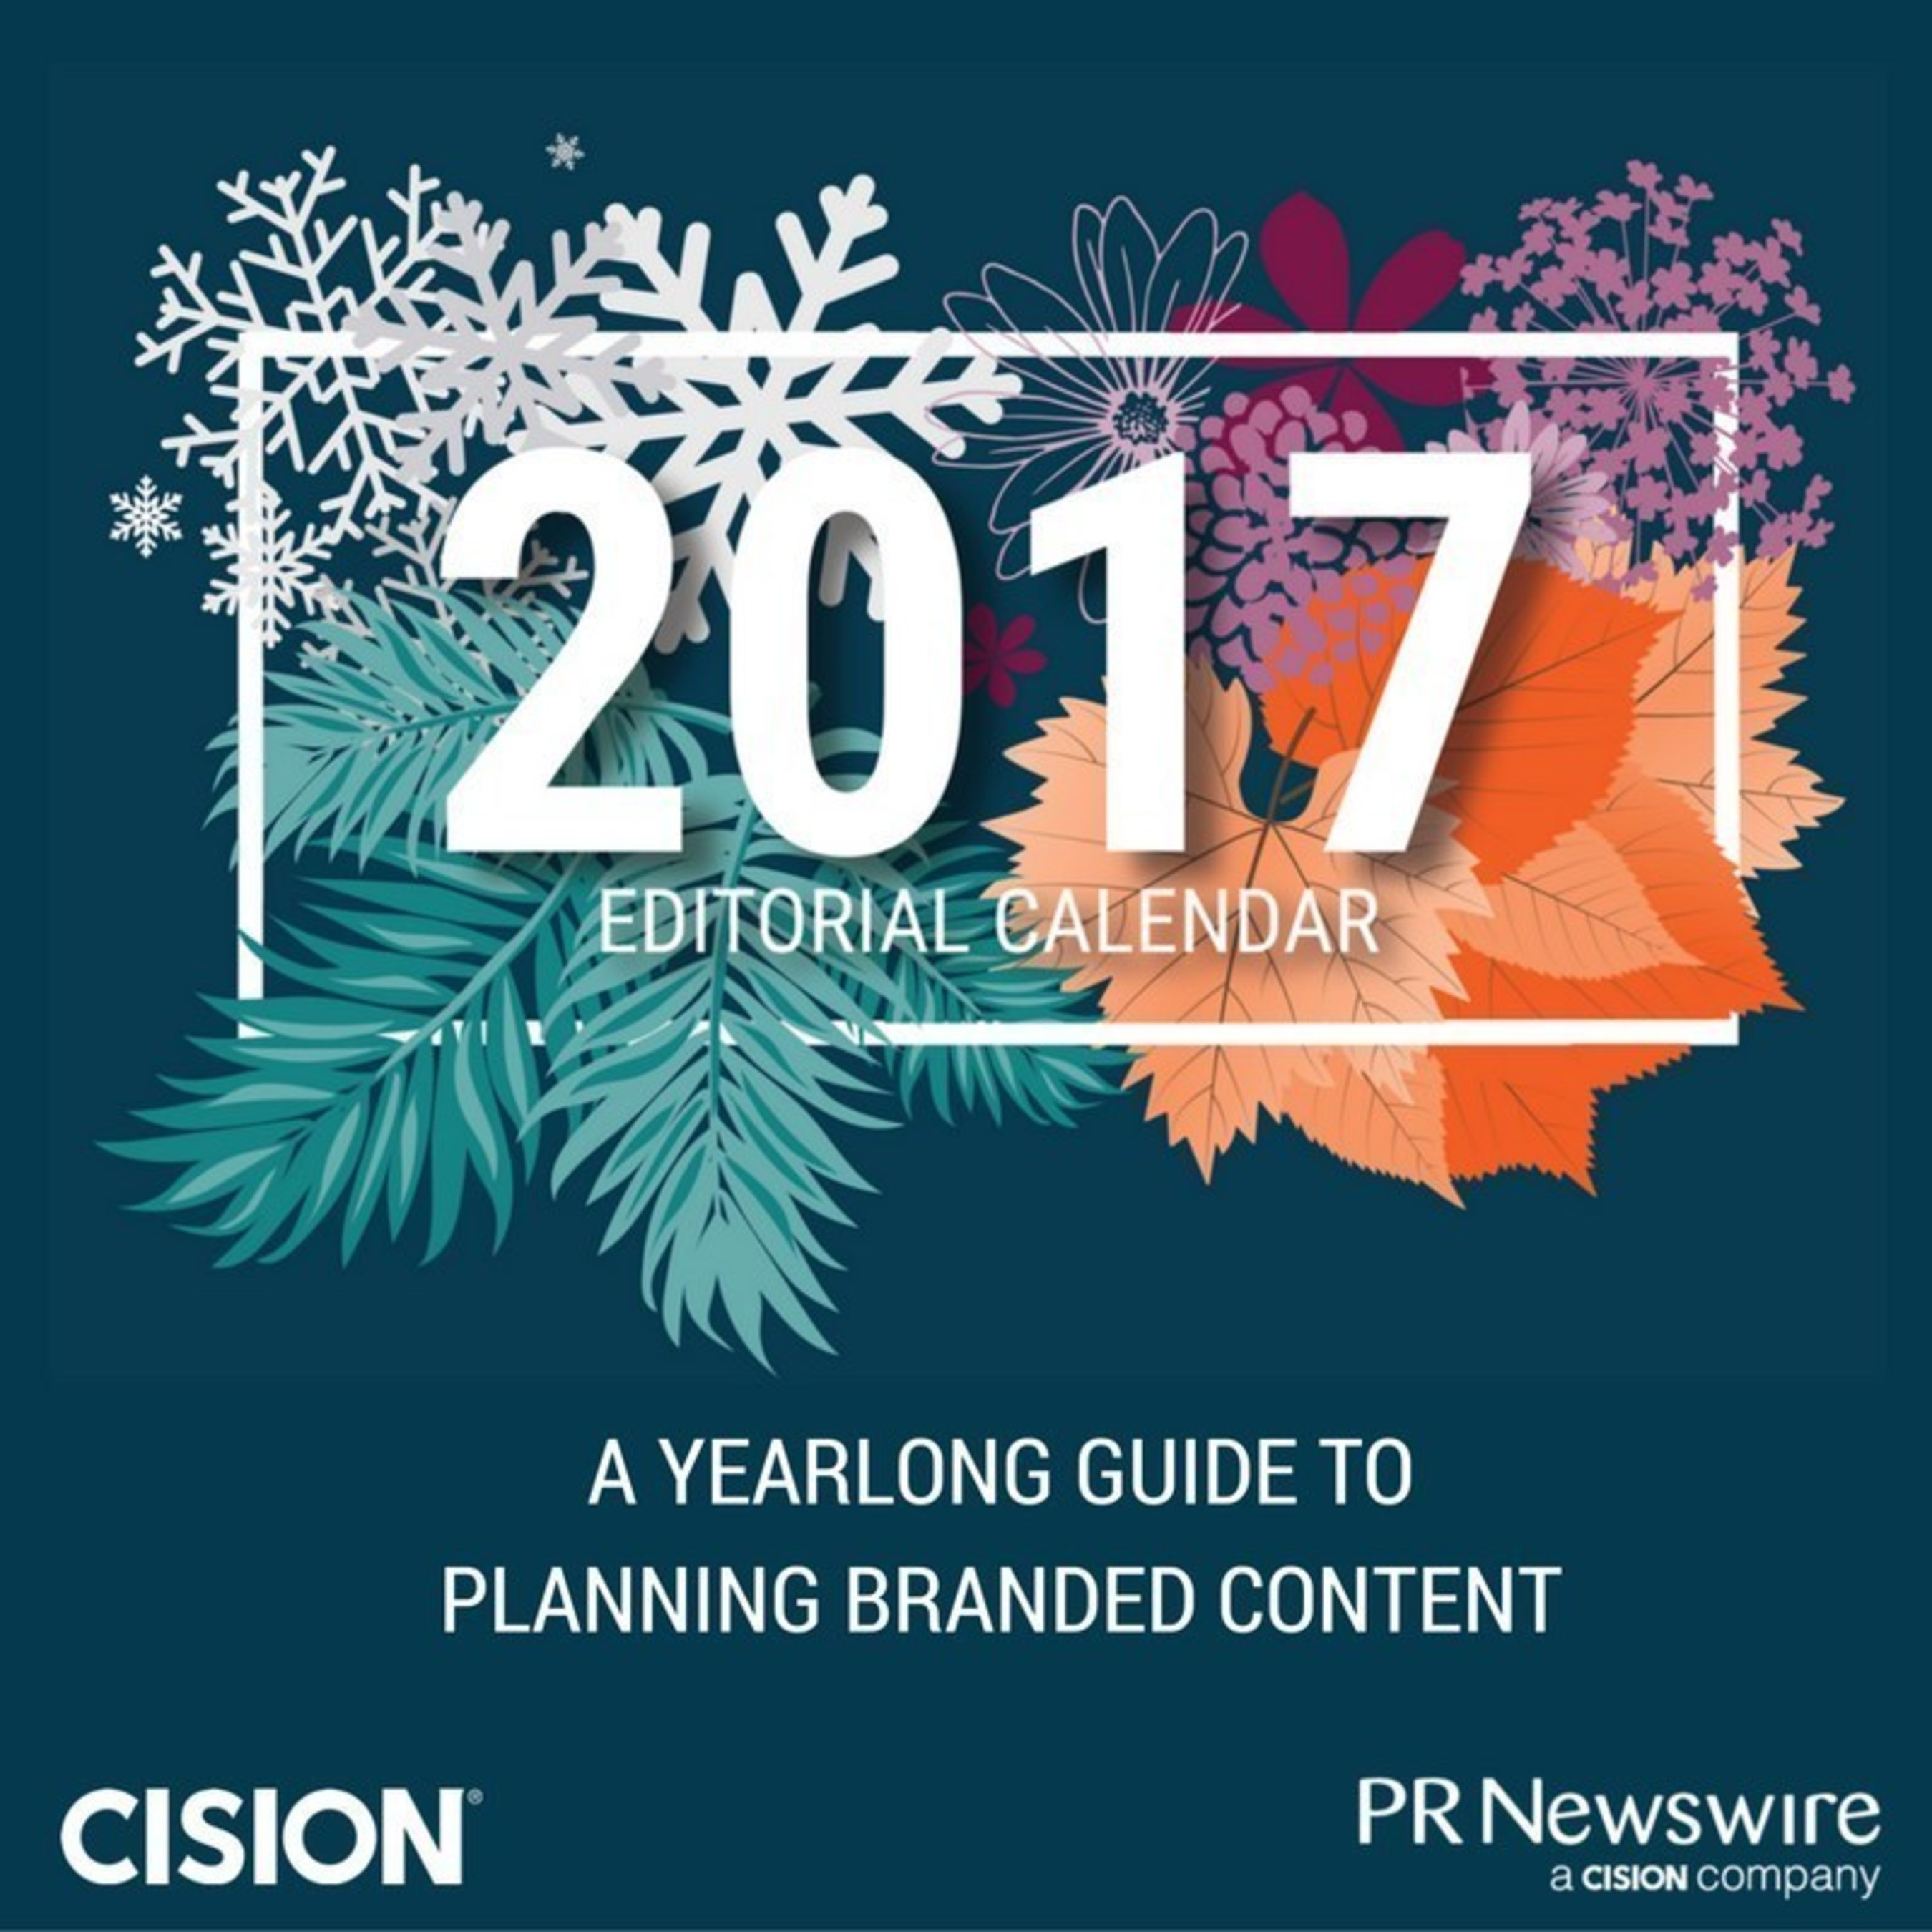 Christian News Wire | Pr Newswire Releases Interactive Editorial Content Calendar For 2017